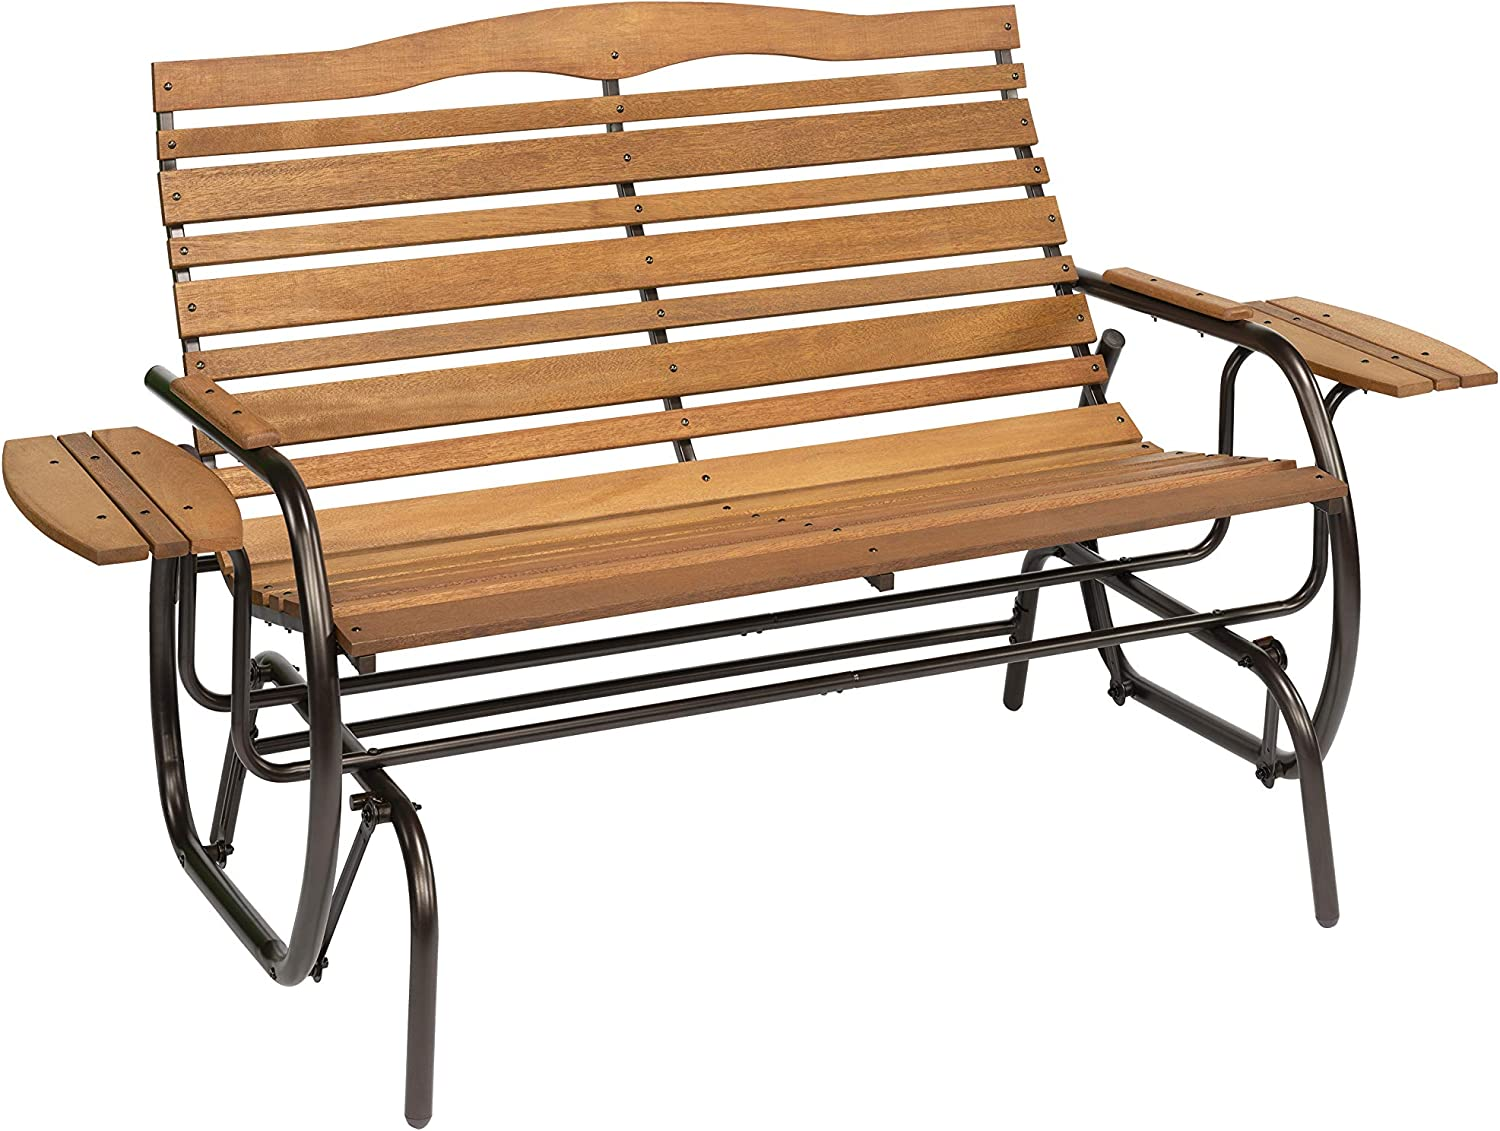 Woodlawn&Home Hardwood Glider with Trays, 300020